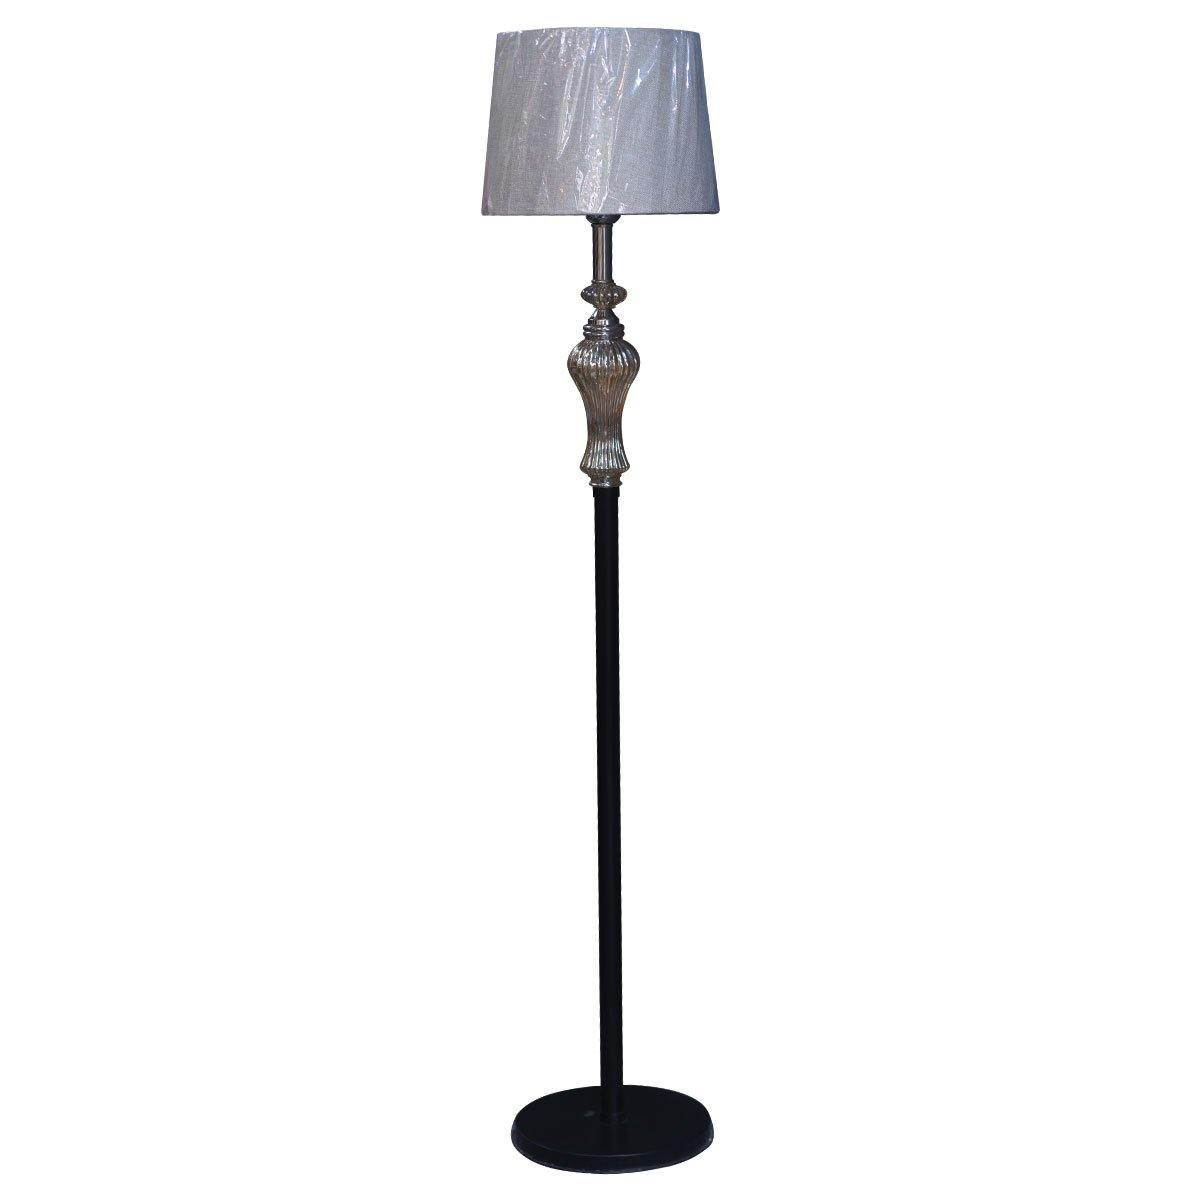 Casa Floor Lamp second